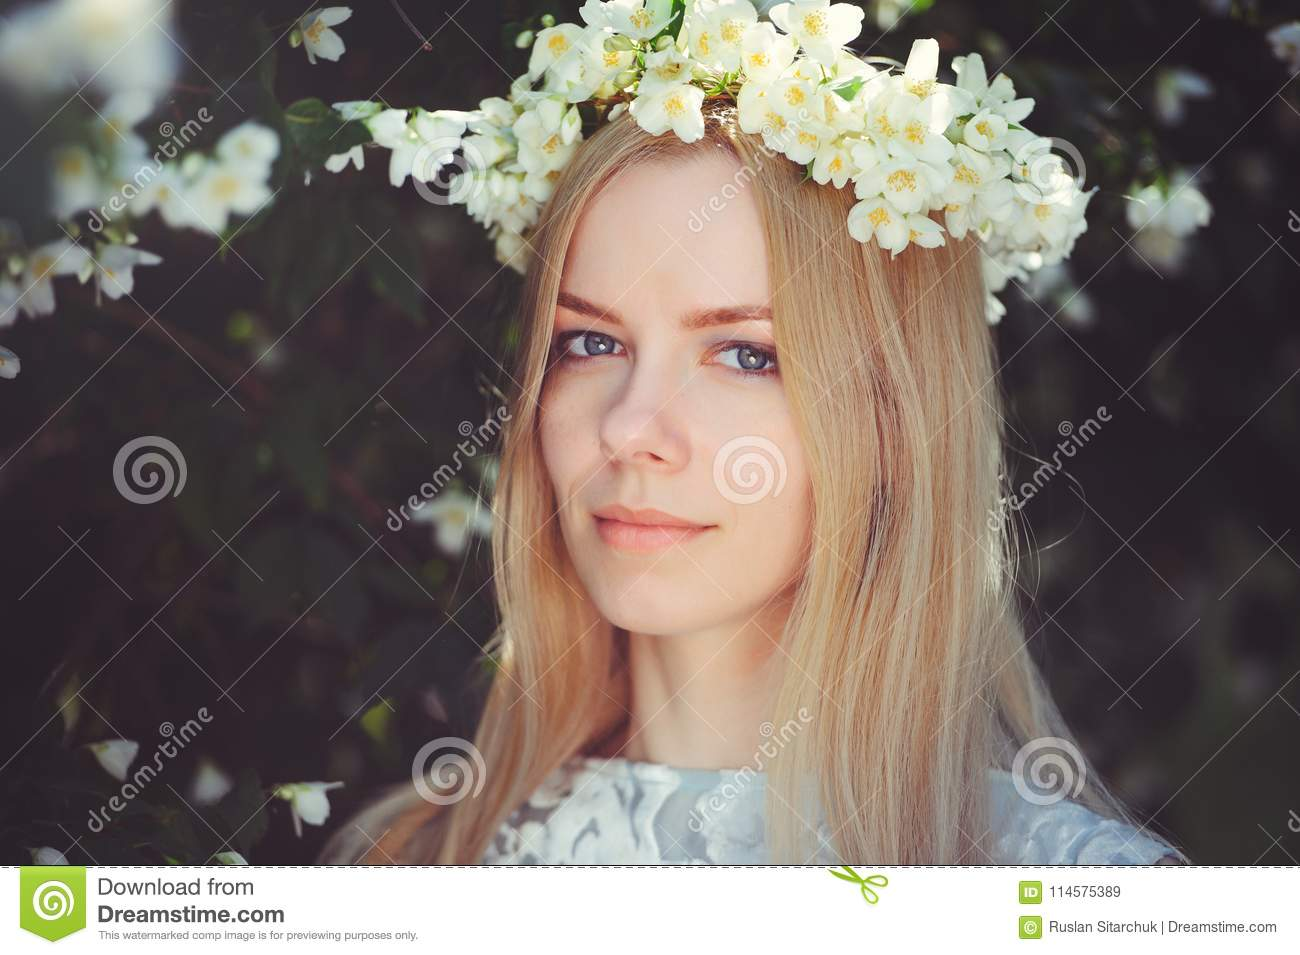 Attractive modest young girl with blonde with jasmine flowers wreath attractive modest young girl with blonde with jasmine flowers wreath on head long hair and natural izmirmasajfo